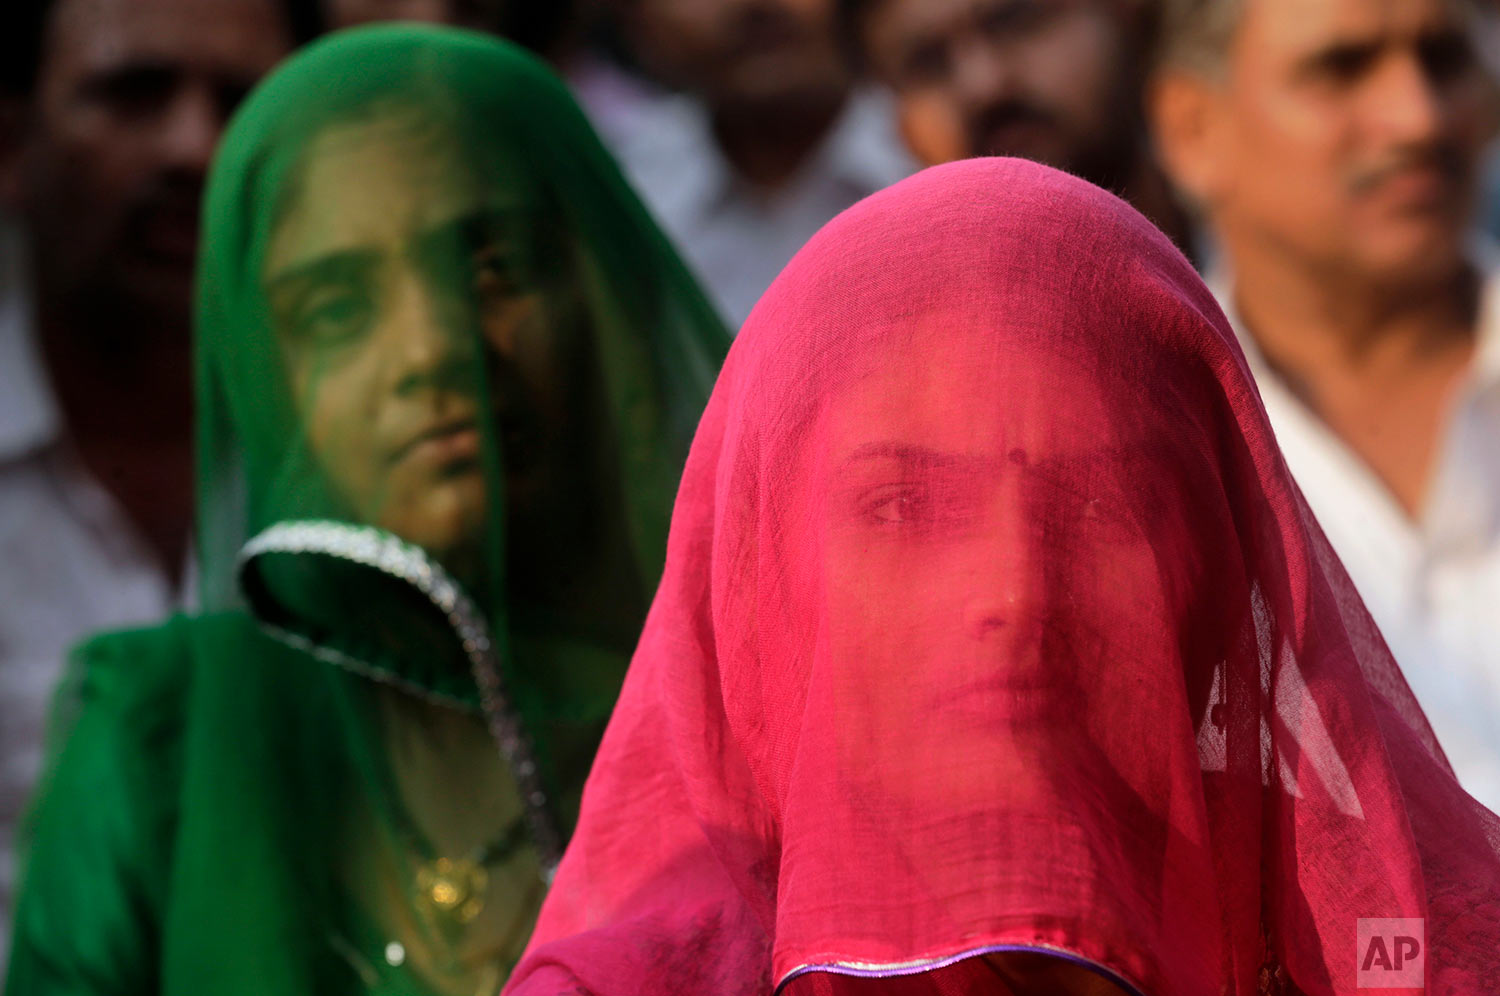 """In this Nov, 20, 2017, photo, veiled members of India's Rajput community listen to a speech by their leader as they gather to protest against the release of the Bollywood film """"Padmavati"""" in Mumbai, India. The film has been in trouble since the beginning of the year, with fringe groups in the western state of Rajasthan attacking the film's set, threatening to burn down theaters that show it and even physically attacking the director in January. A member of India's Hindu nationalist ruling party has offered a 100 million rupee ($1.5 million) reward to anyone who beheads the lead actress and the director of the yet-to-be released film over its alleged handling of the relationship between a Hindu queen and a Muslim ruler. (AP Photo/Rafiq Maqbool)"""